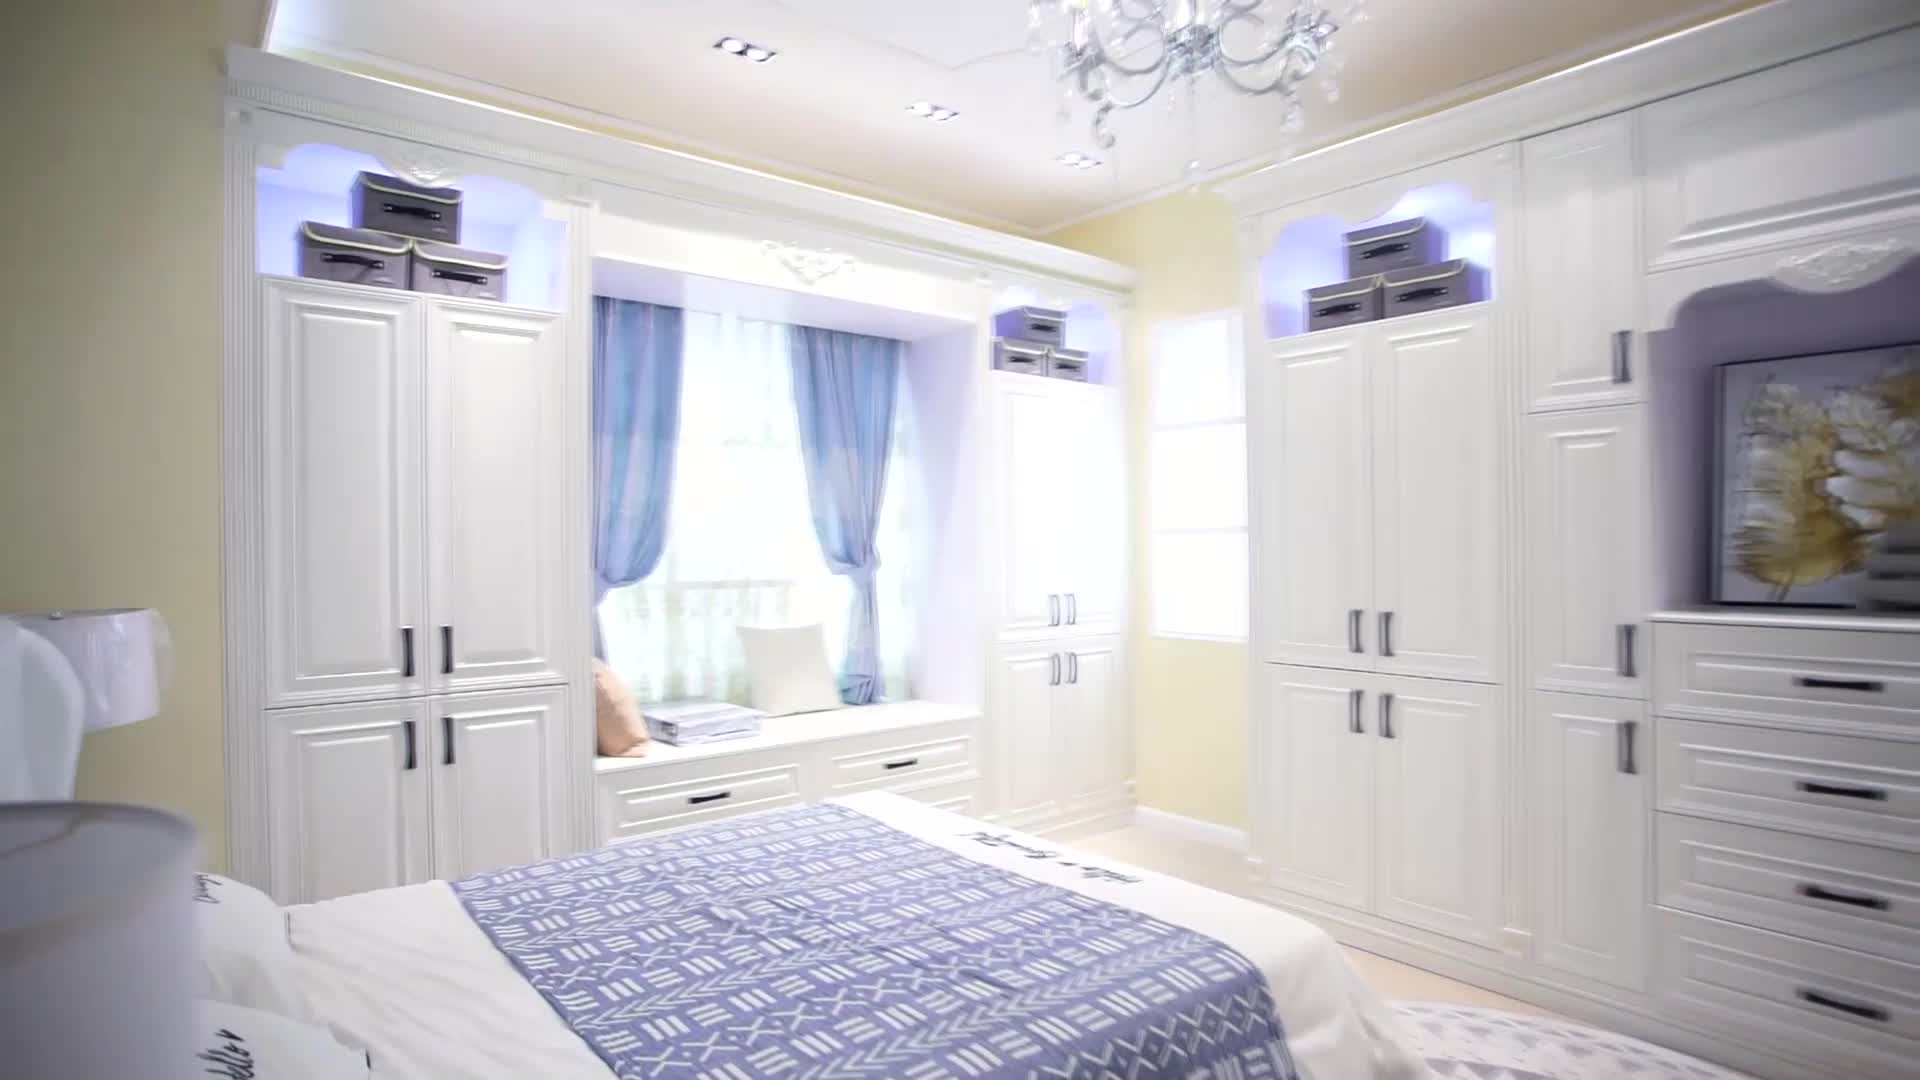 Home furniture modern style shutter door bedroom closet wardrobe